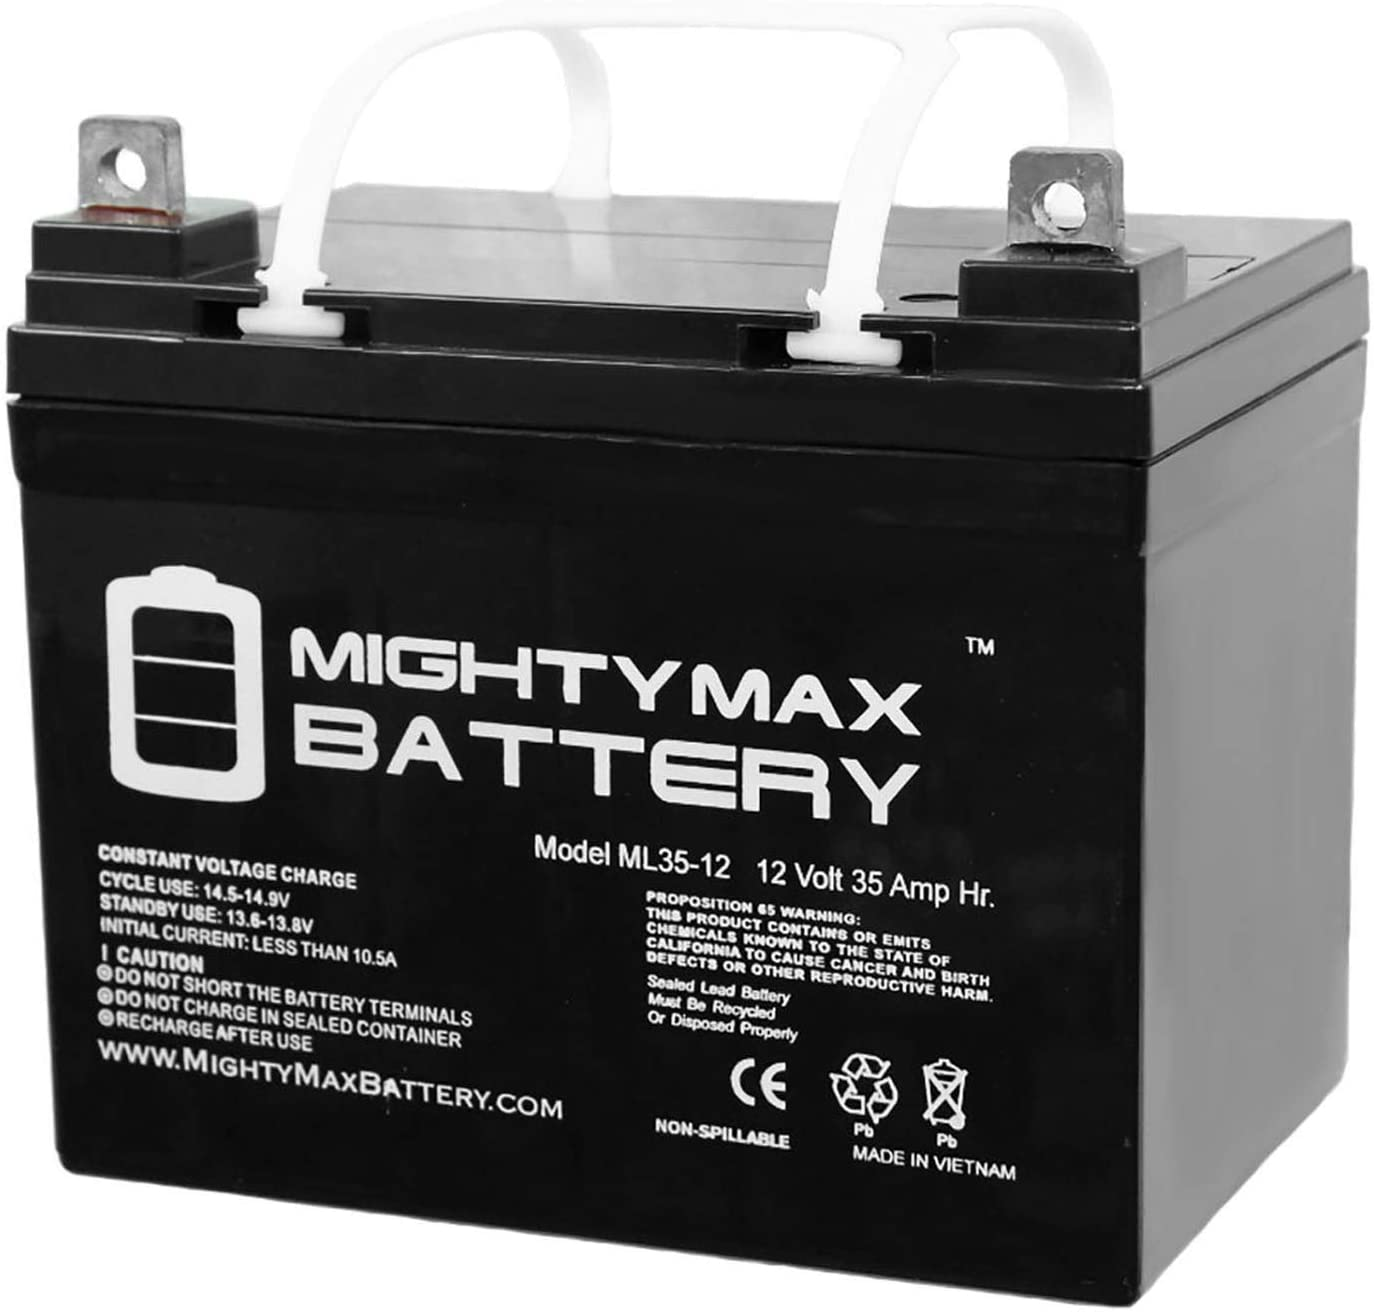 Mighty Max Battery ML35-12 - 12V 35AH Invacare Wheelchairs Action Arrow Replacement Battery Brand Product